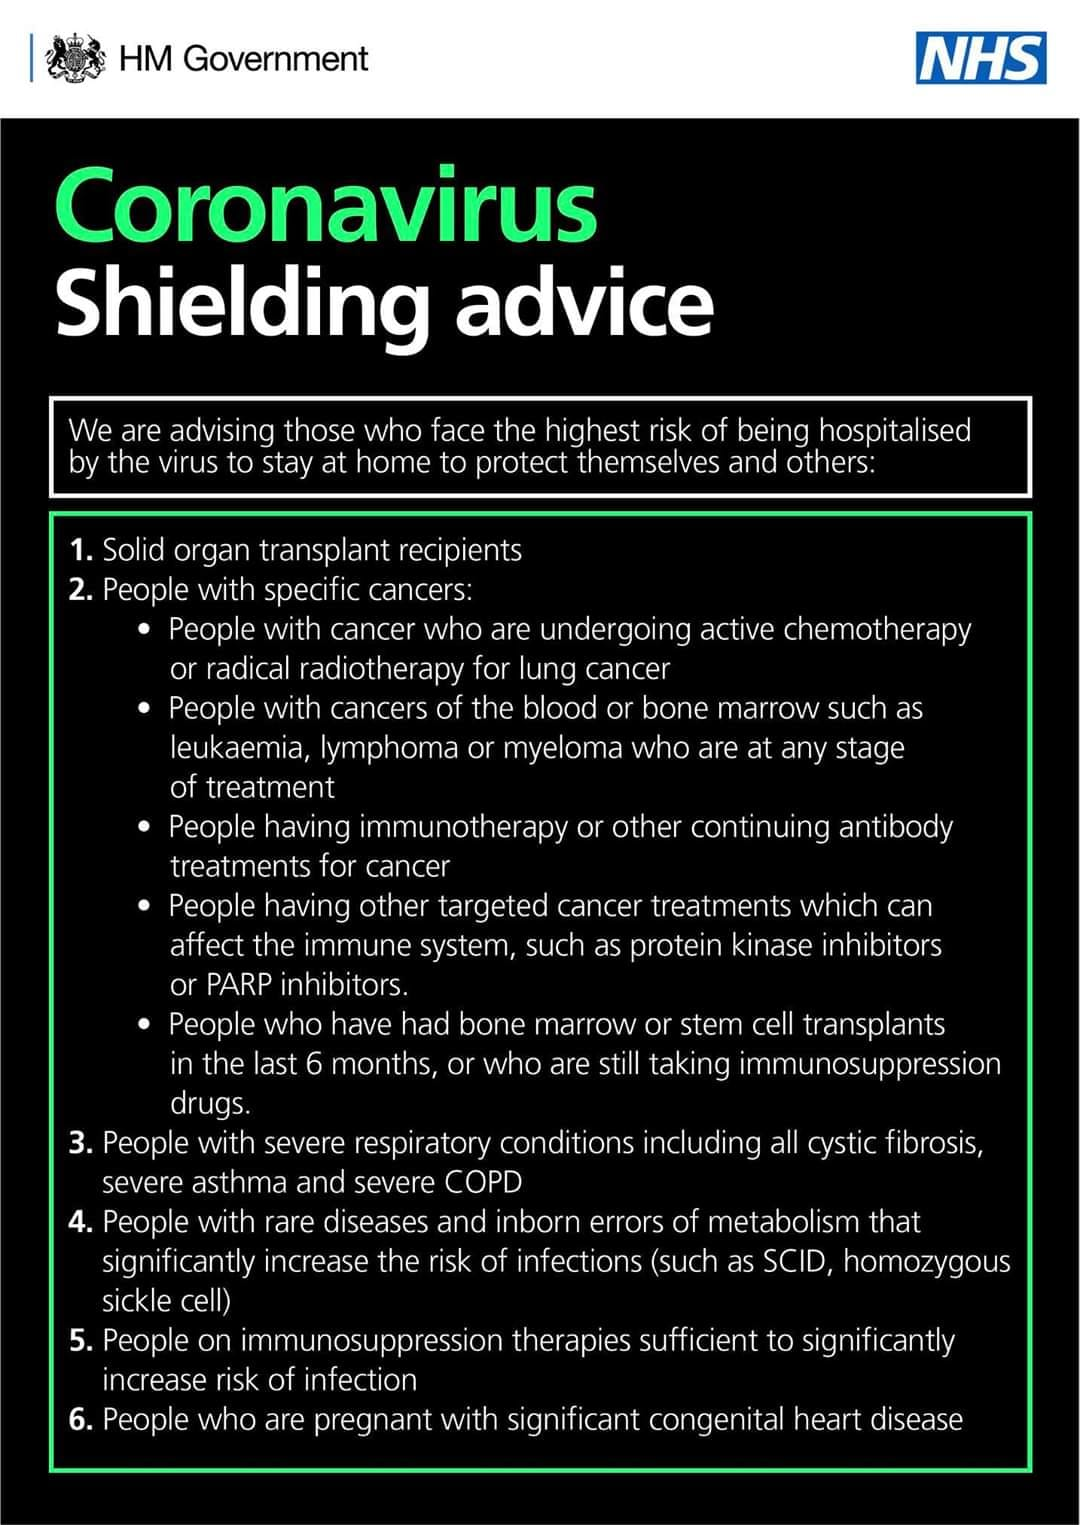 Coronavirus - shielding advice 1